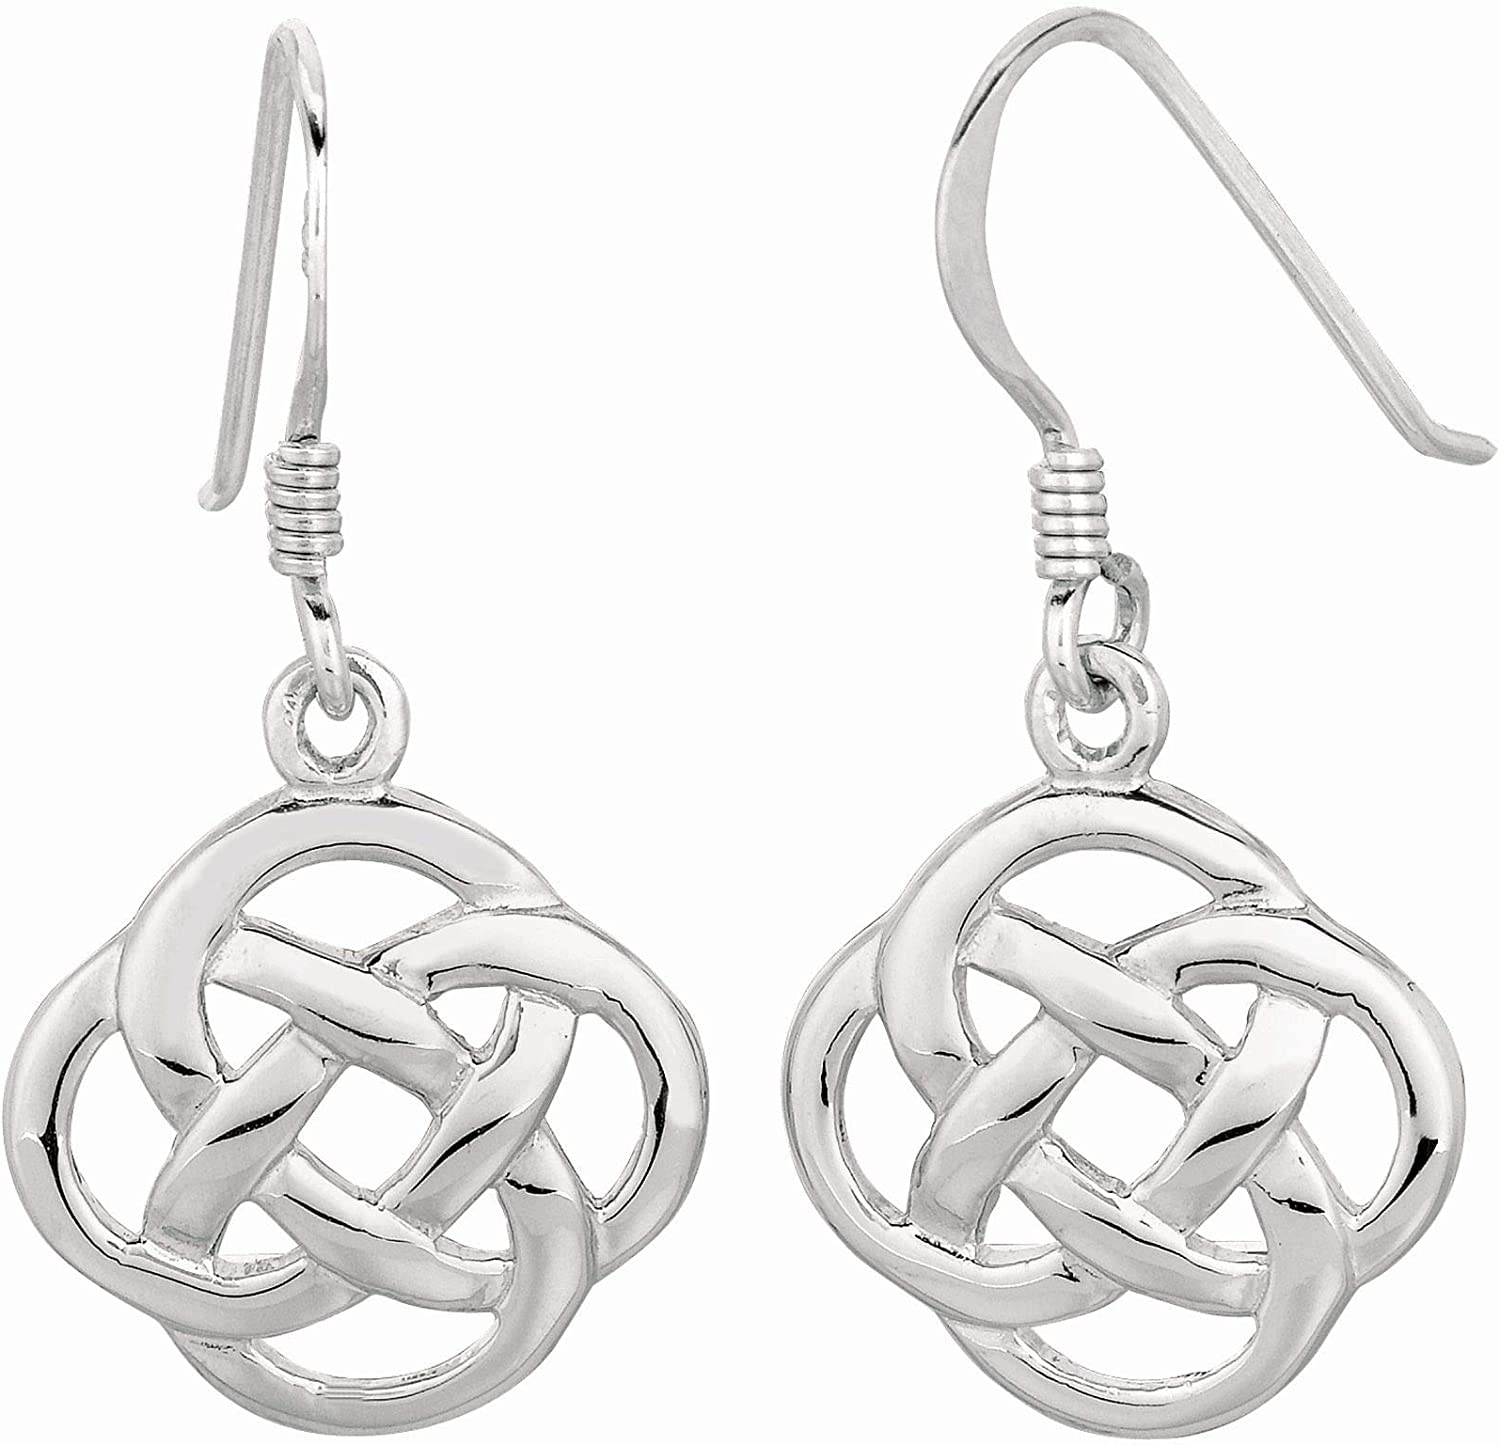 Silver Max 54% OFF with Rhodium Finish Shiny Earr Drop High material Interlock Four Circle